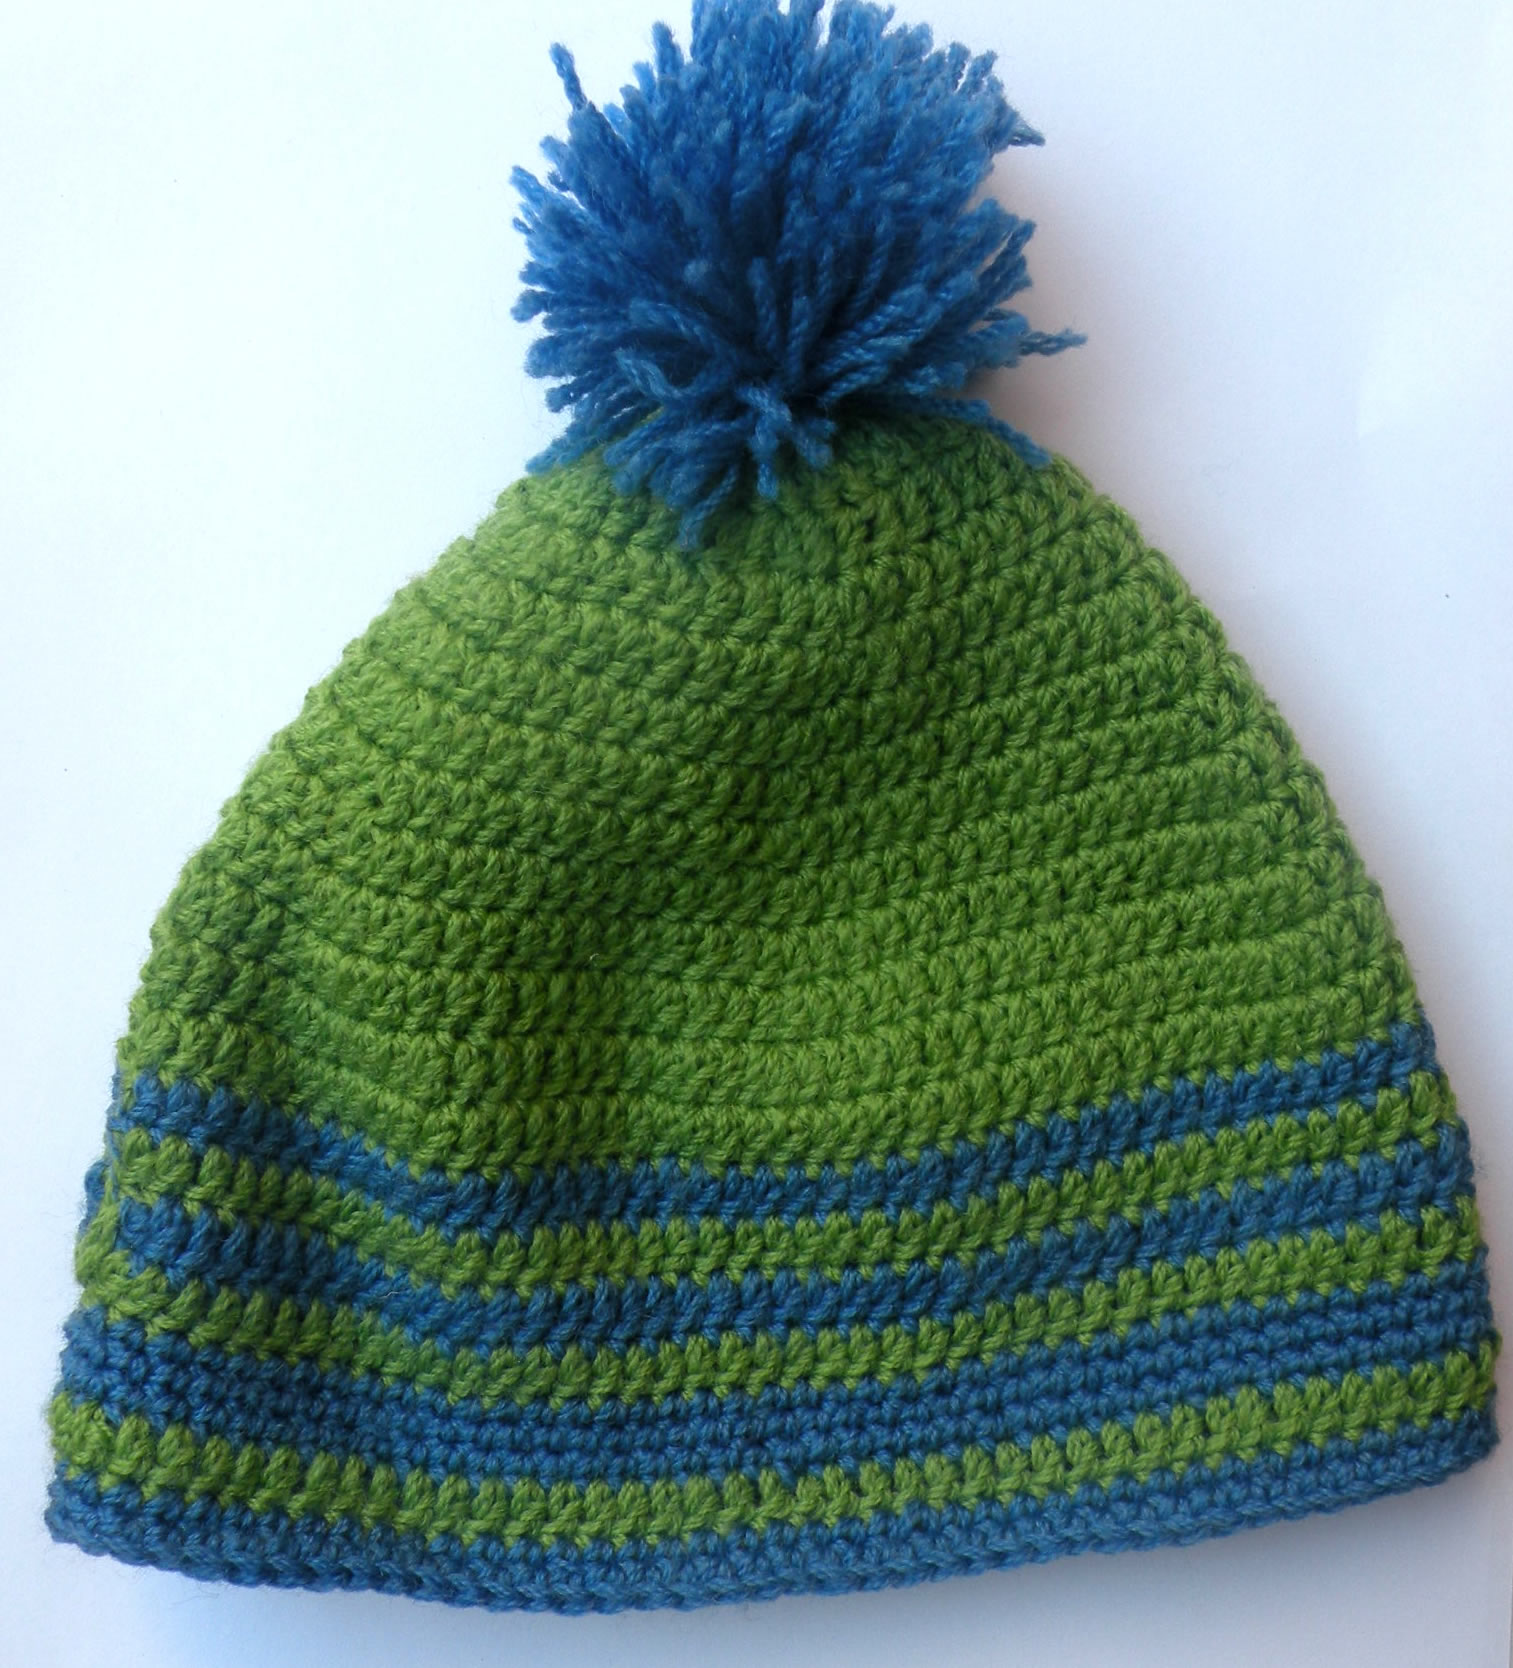 Buy Baby Beanie Wool Blue   Green 3-6m · AfterPay ZipPay · The Wool Room ab17ee4edcc